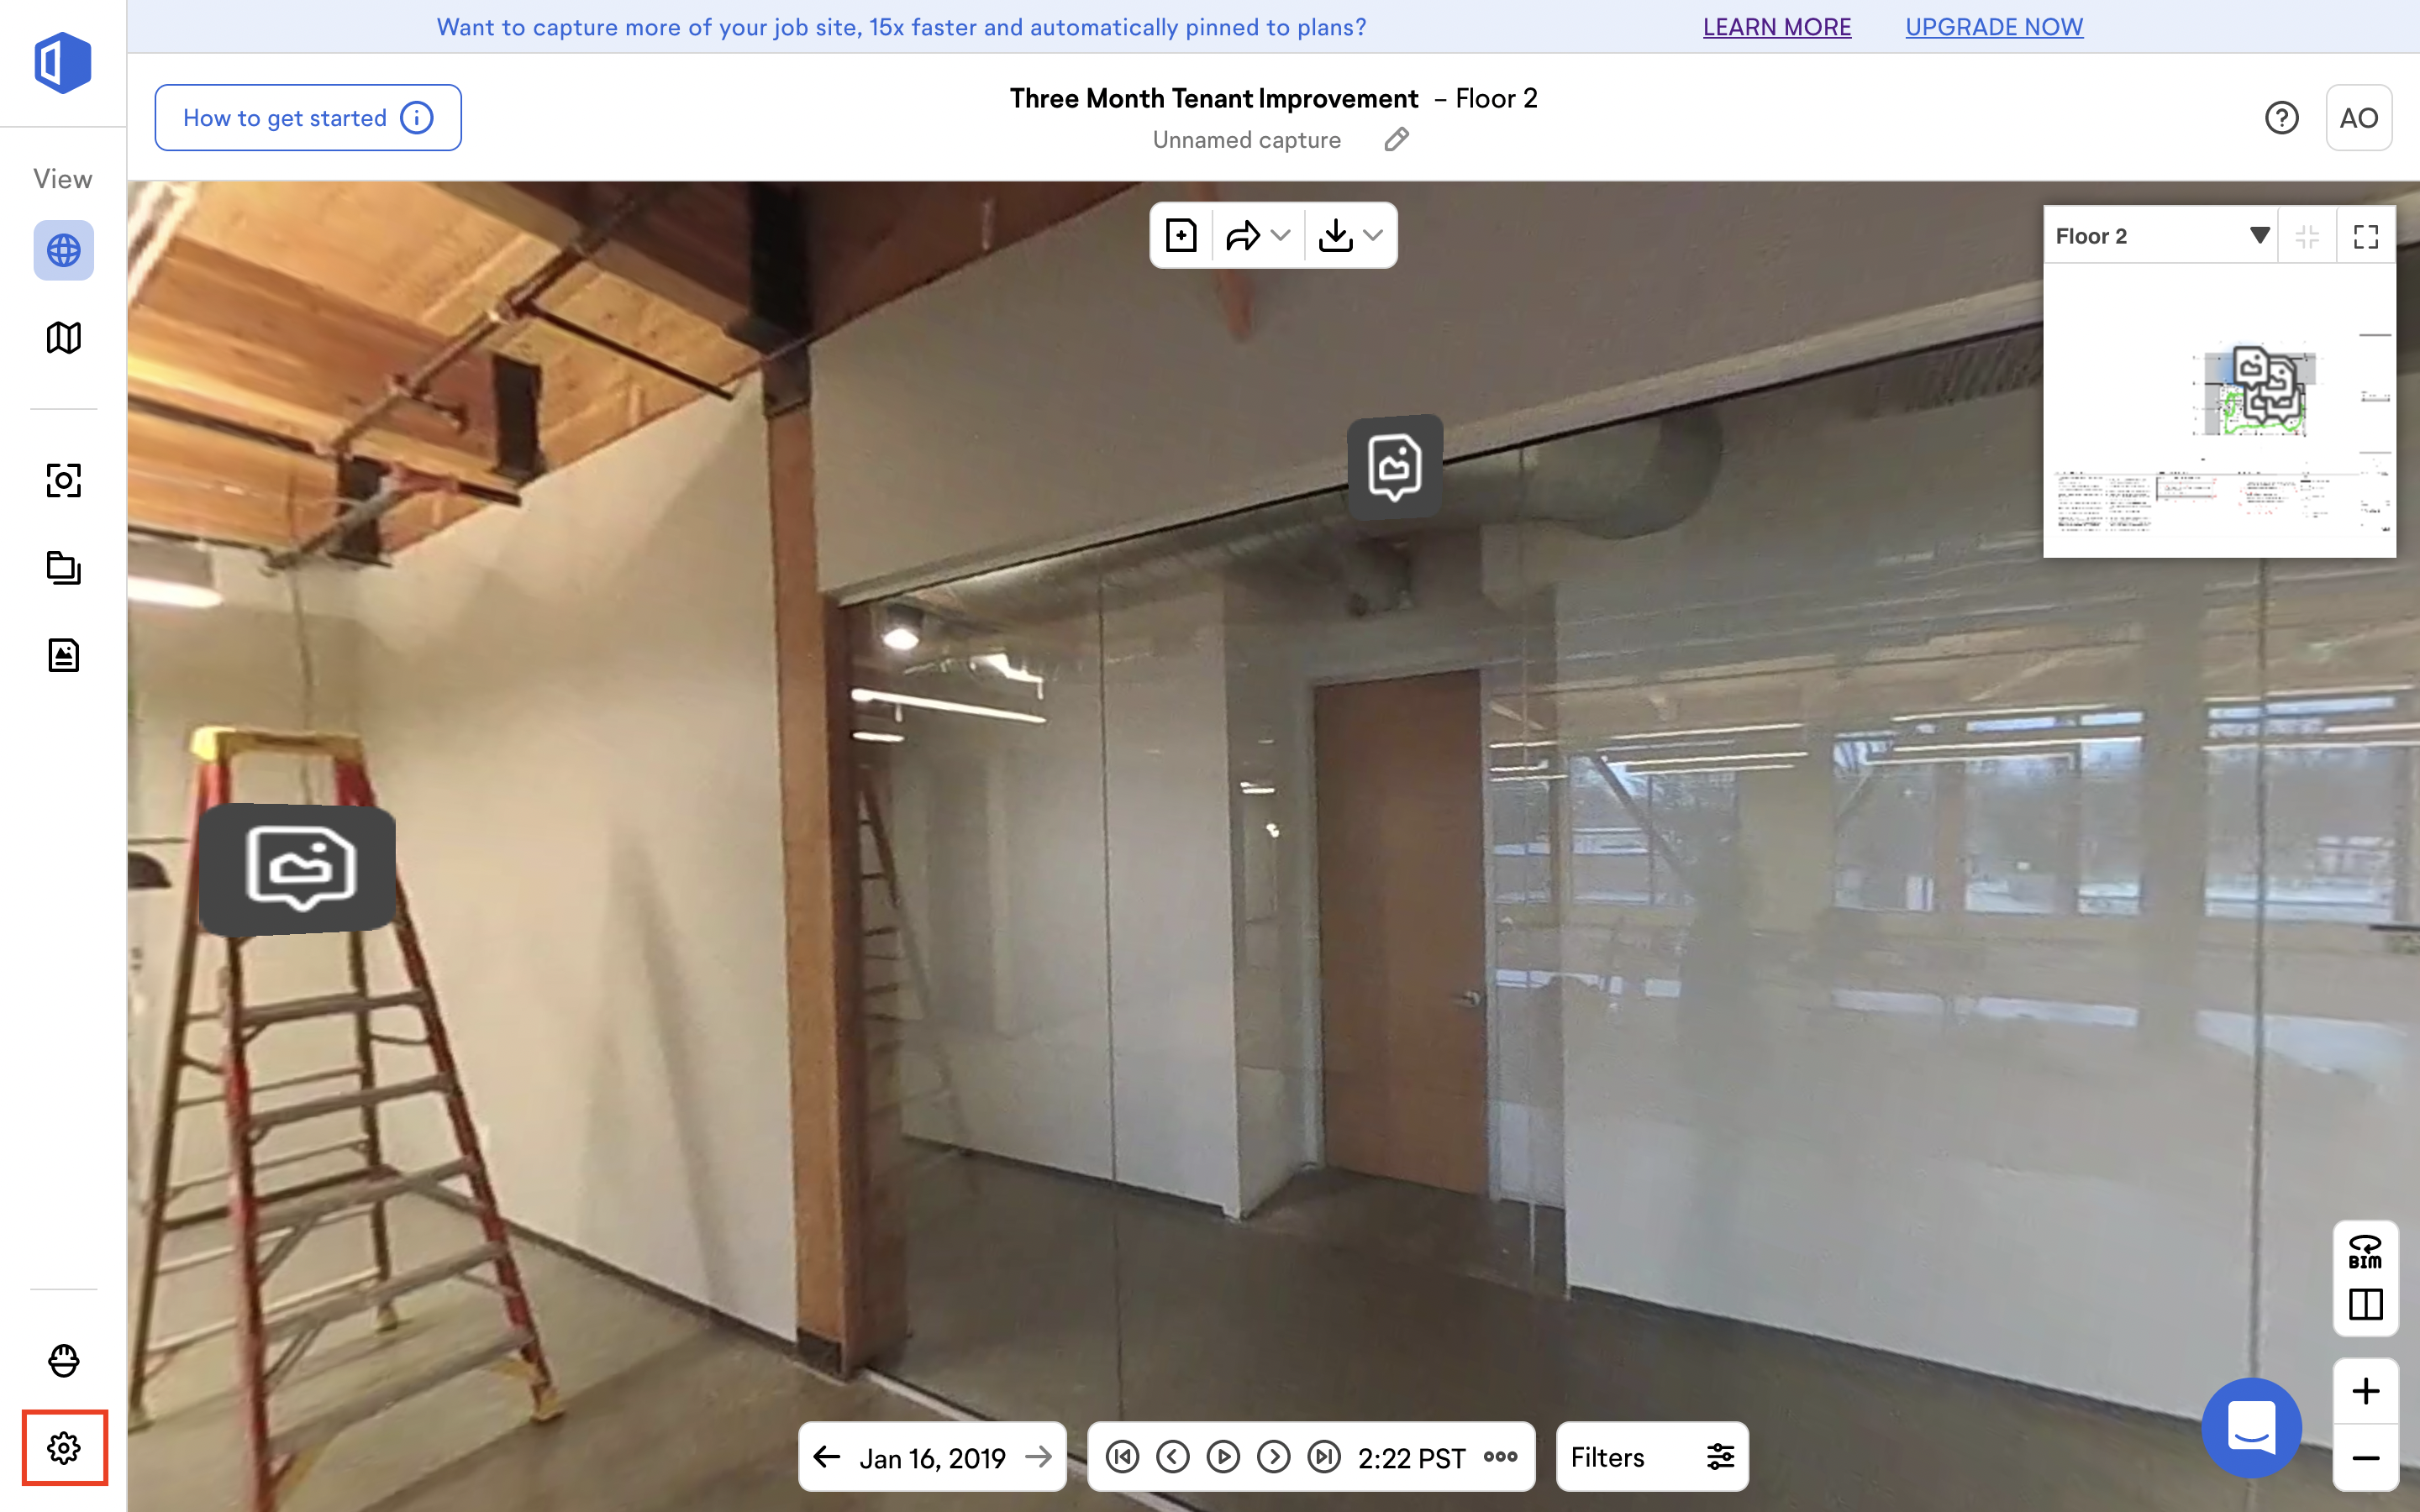 Want to capture more of your job site, 15x faster and automatically pinned to plans?  Three Month Tenant Improvement  - Floor 2  How to get started  View  Jan 16, 2019  Unnamed capture  @ @ 0 0 0 2:22 PST  LEARN MORE  Filters  UPGRADE NOW  Floor 2  AO  arm